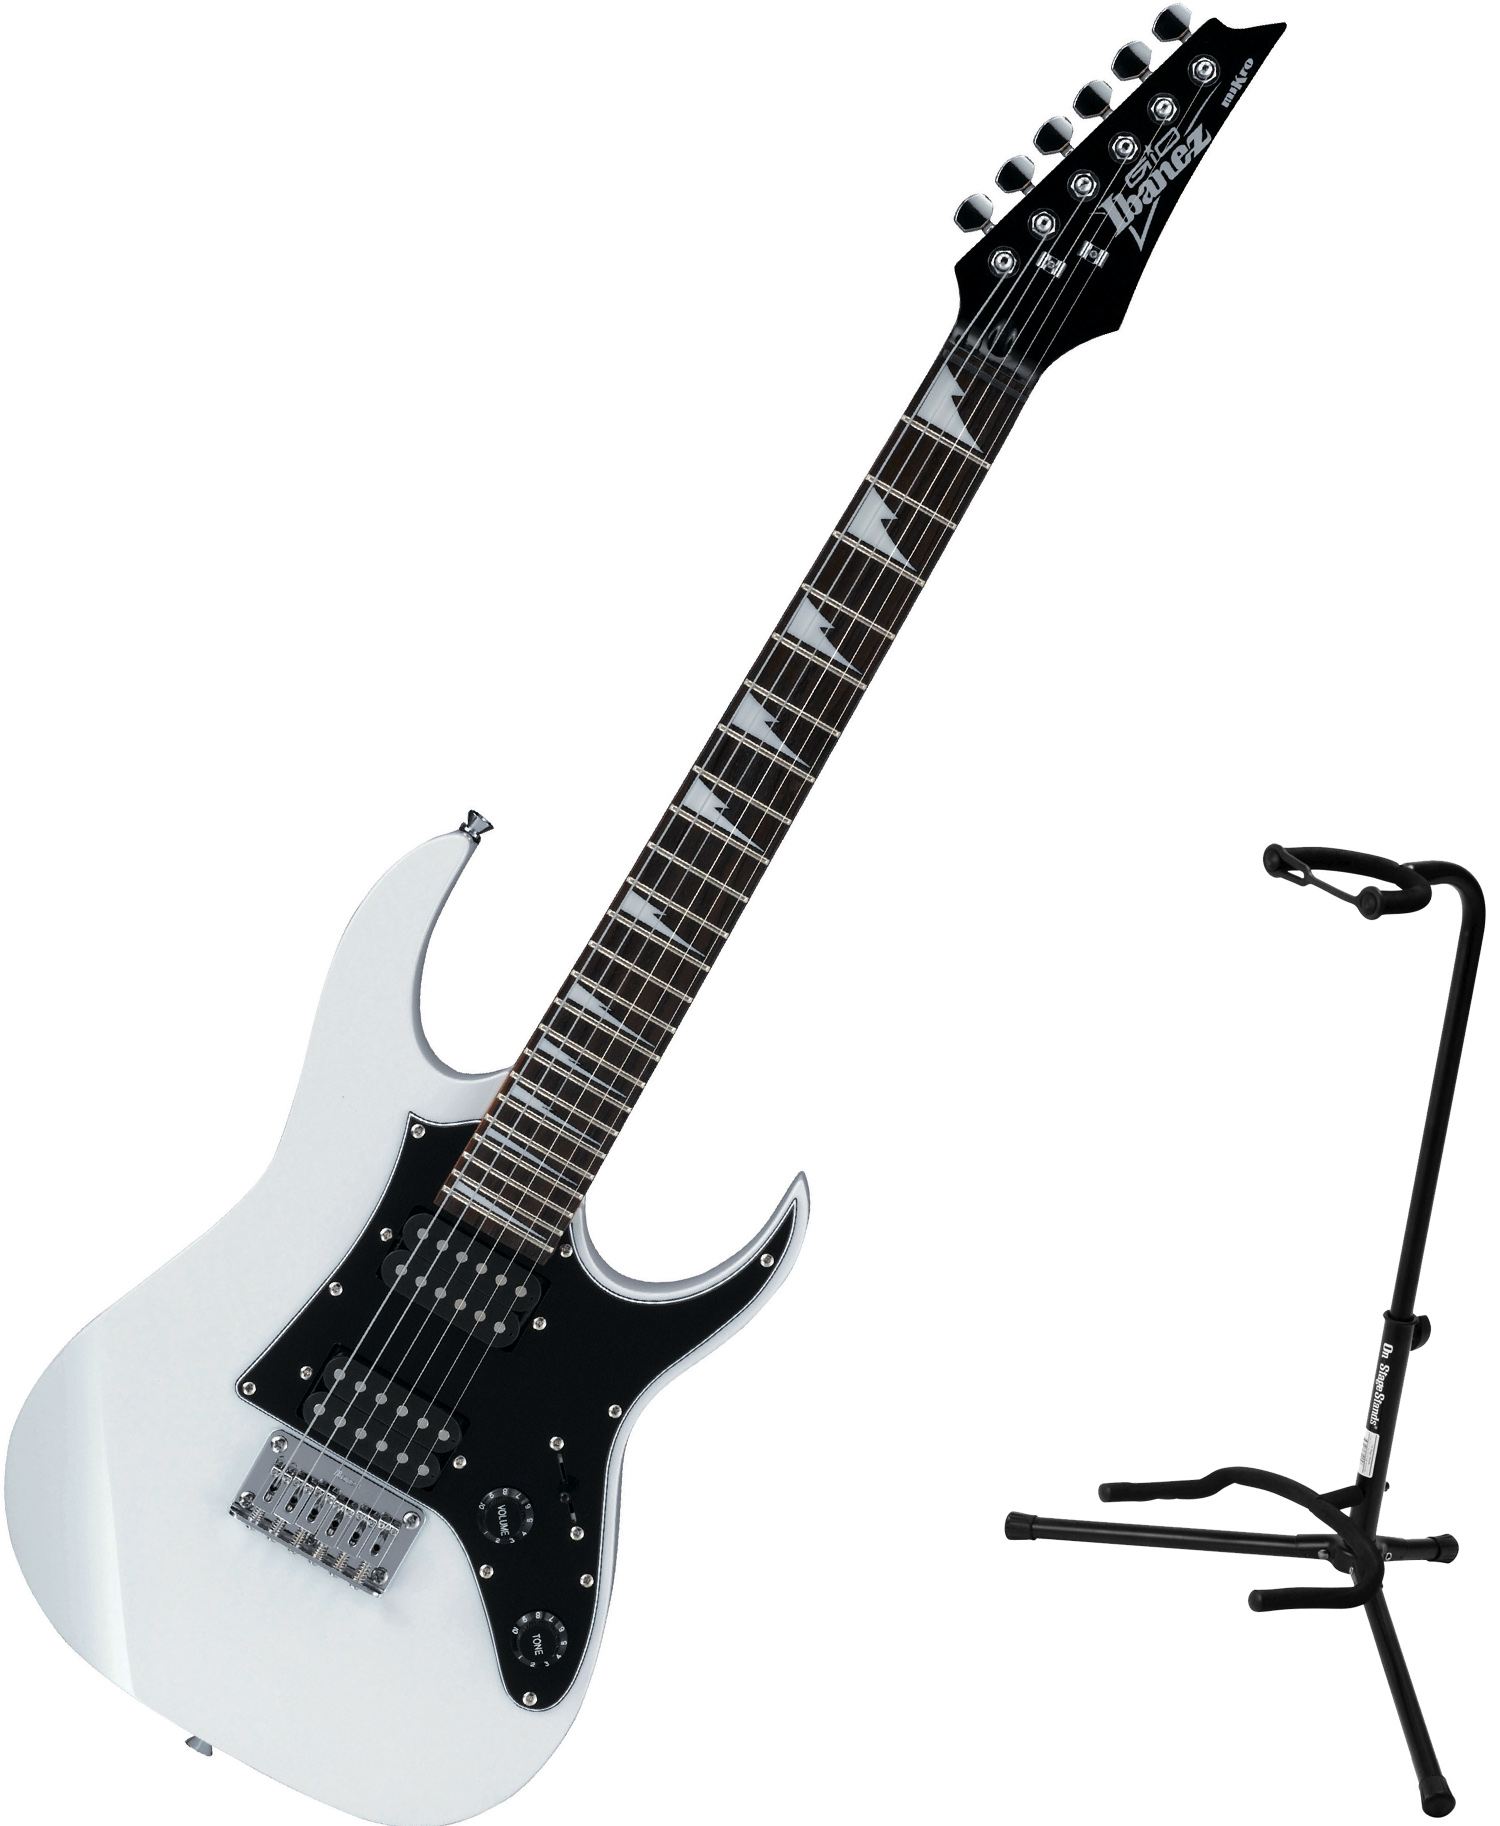 ibanez grgm21 gio mikro white electric guitar bundle w stand 606559341702 ebay. Black Bedroom Furniture Sets. Home Design Ideas